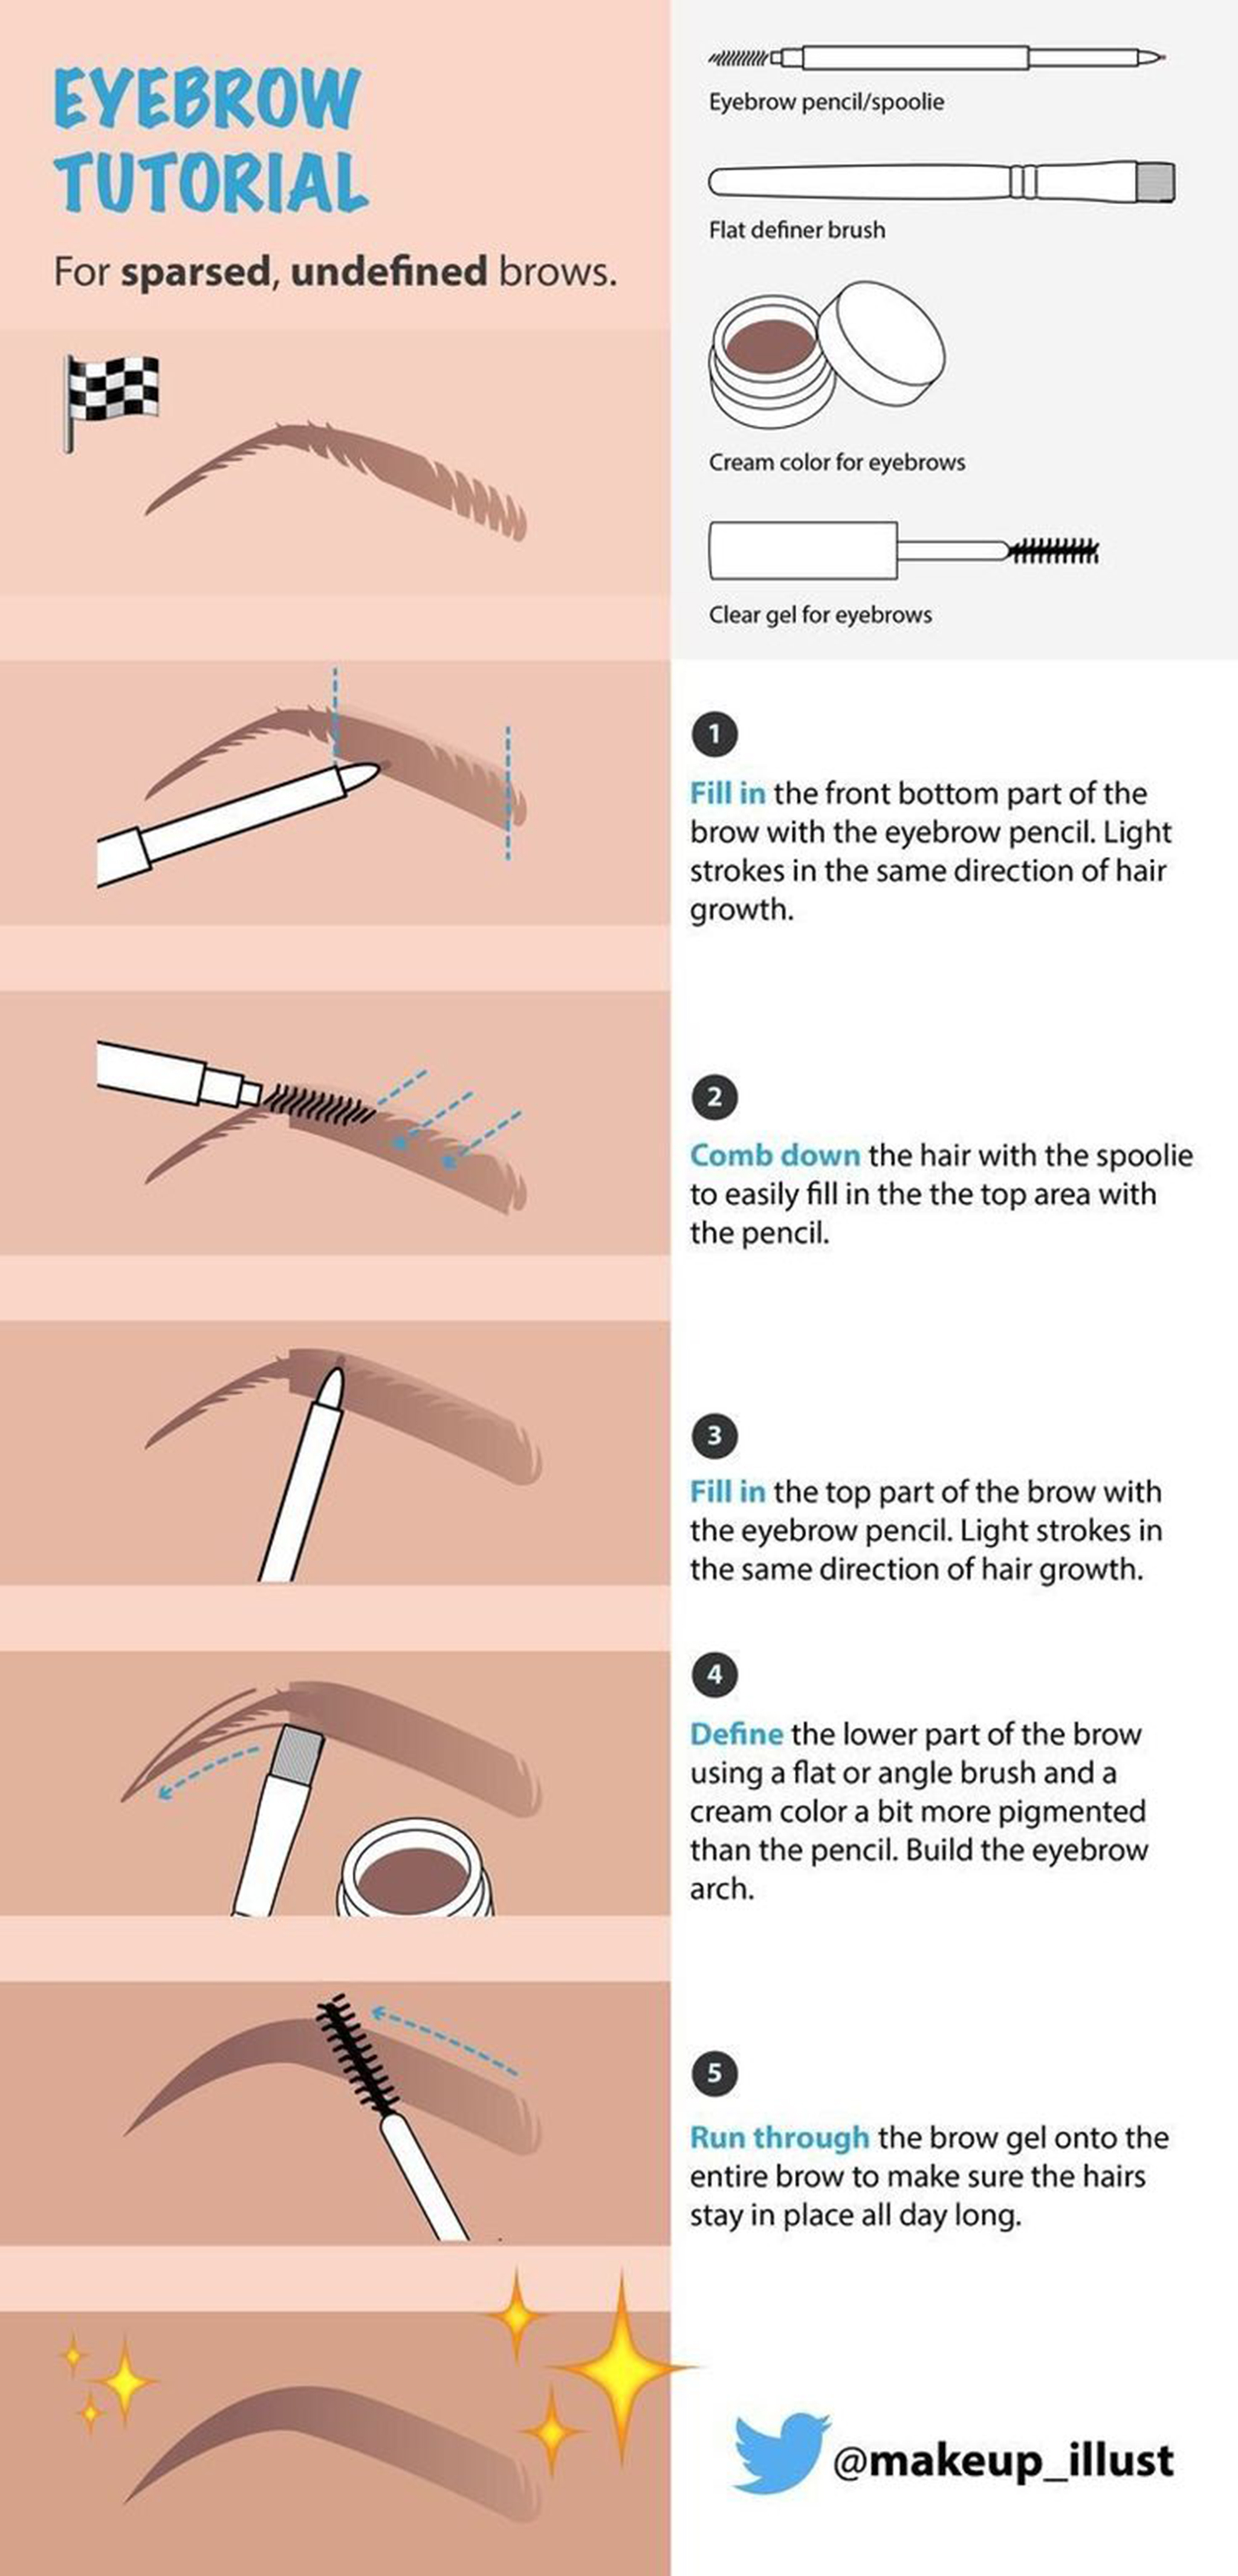 Easy Steps To Make The Perfectly Shaped Eyebrows Without Threading